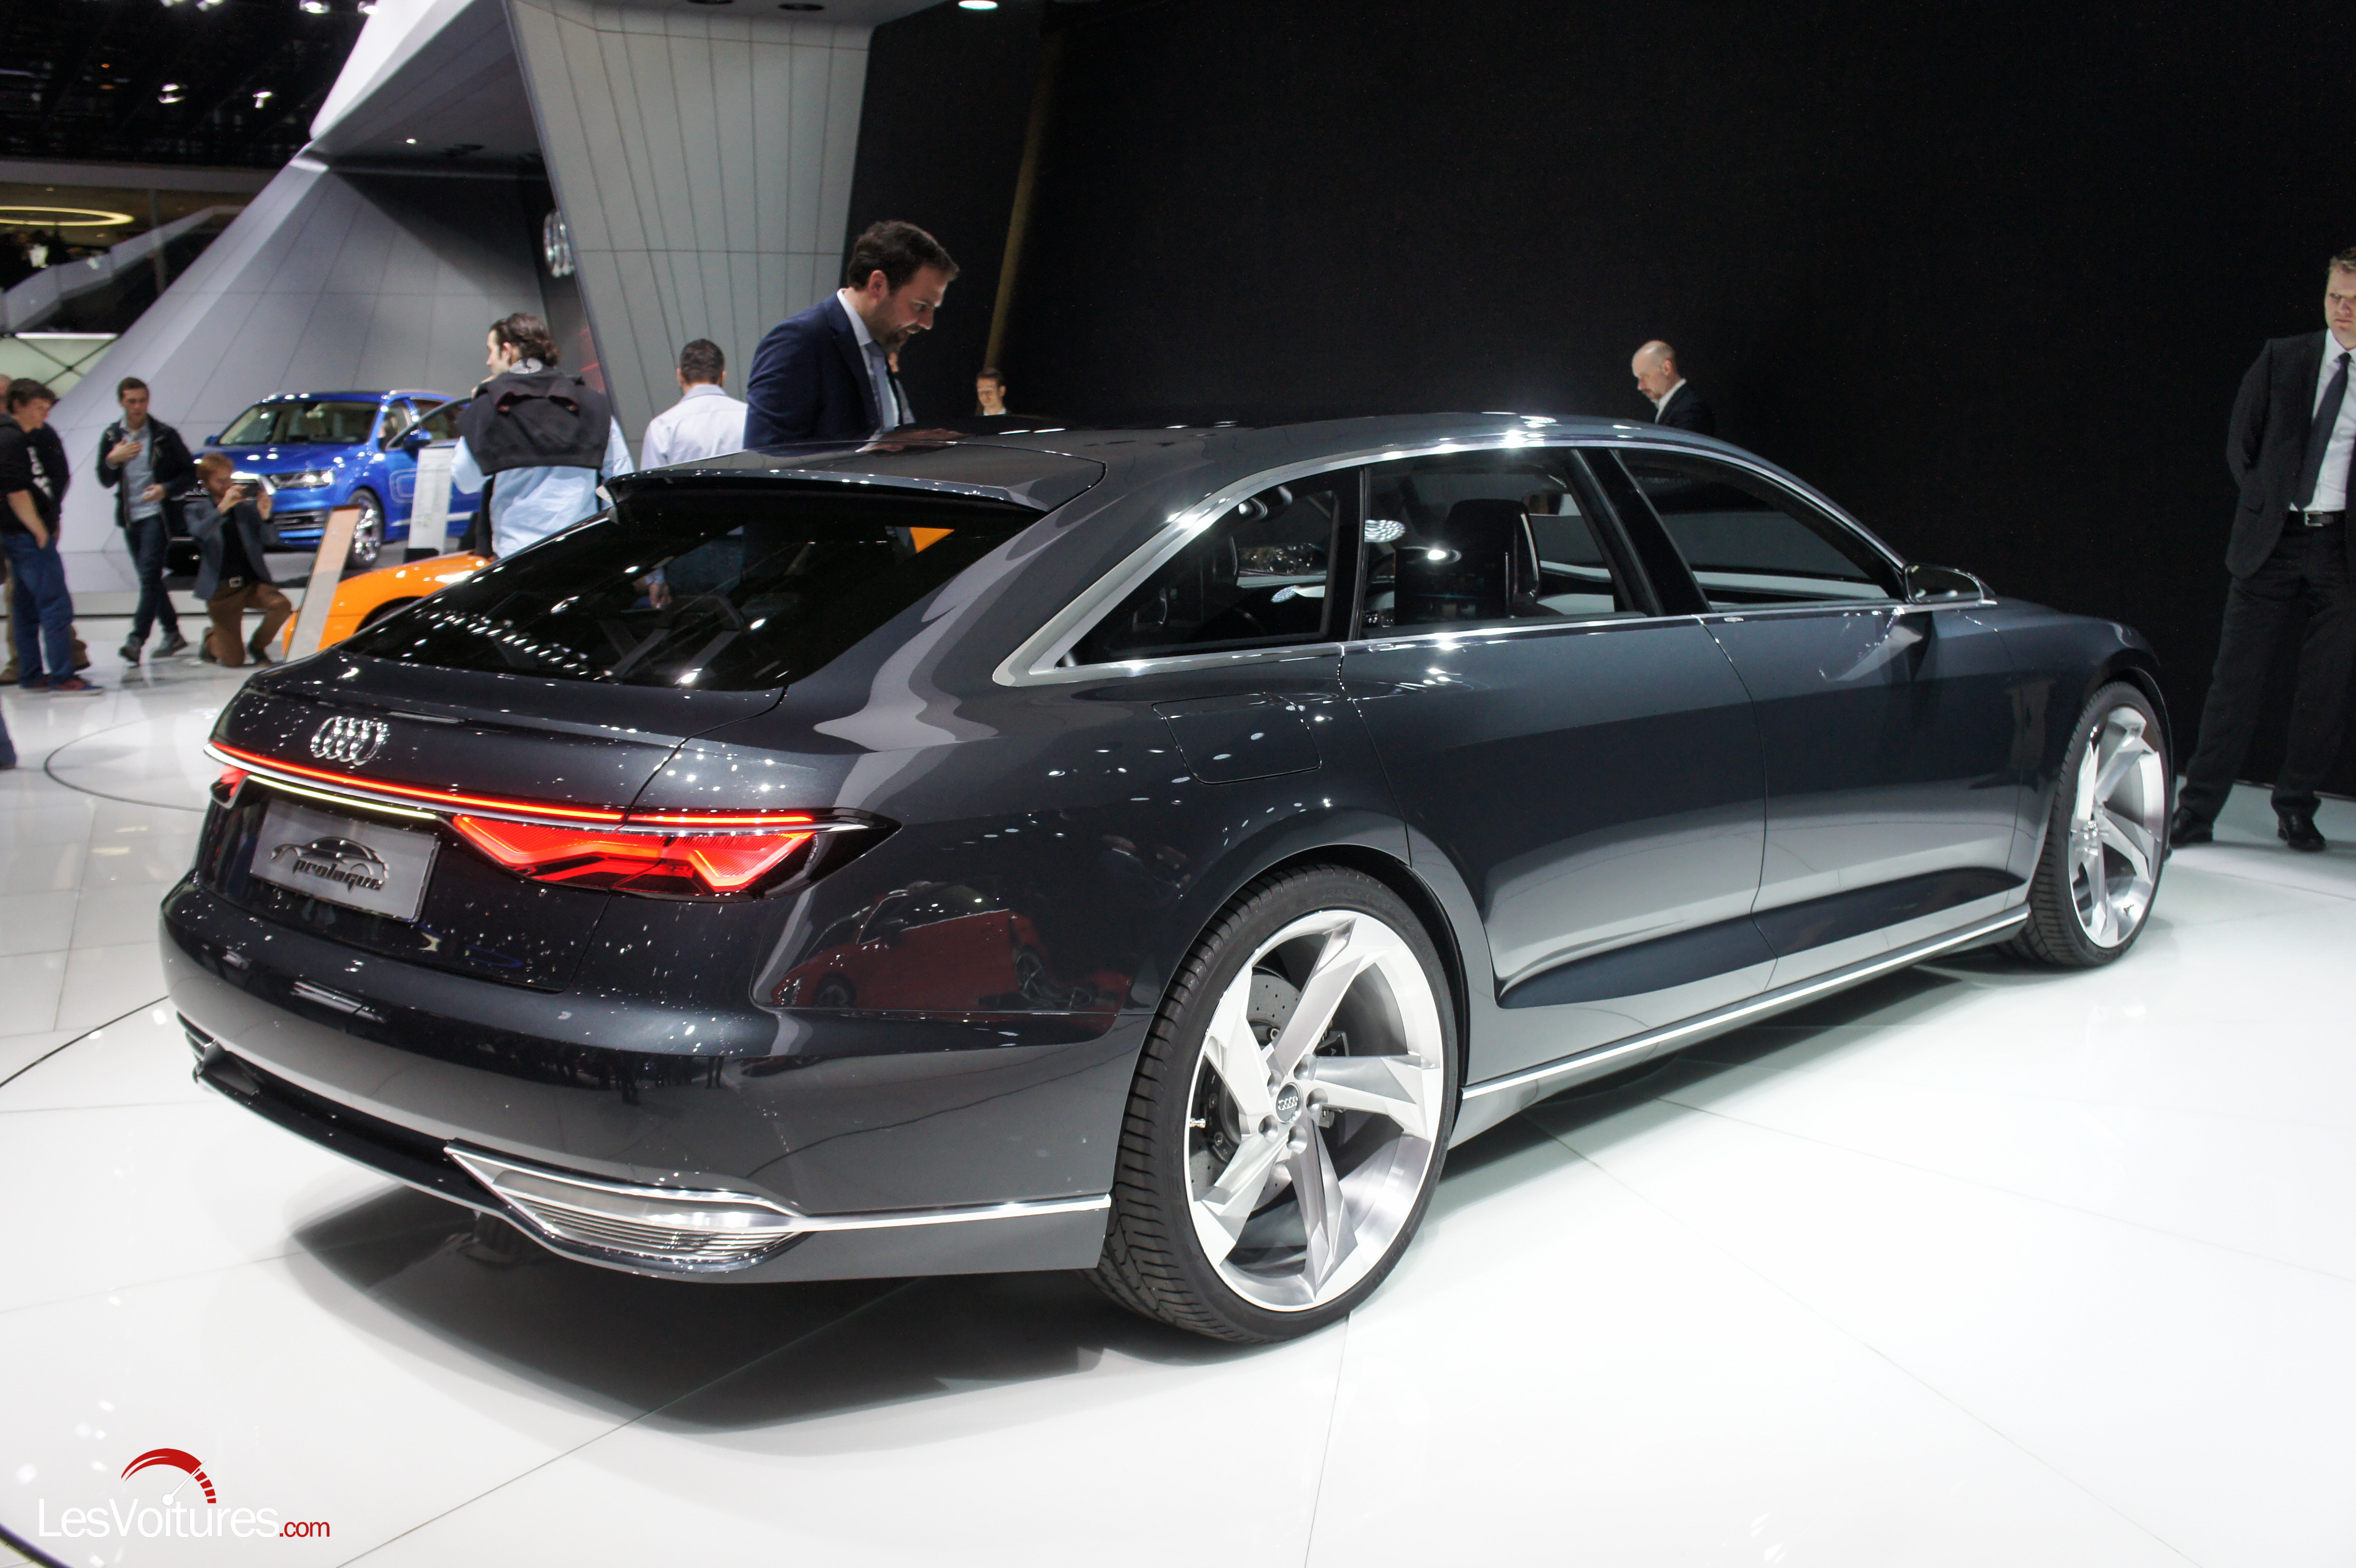 salon gen ve 2015 175 audi avant prologue concept a9 les voitures. Black Bedroom Furniture Sets. Home Design Ideas